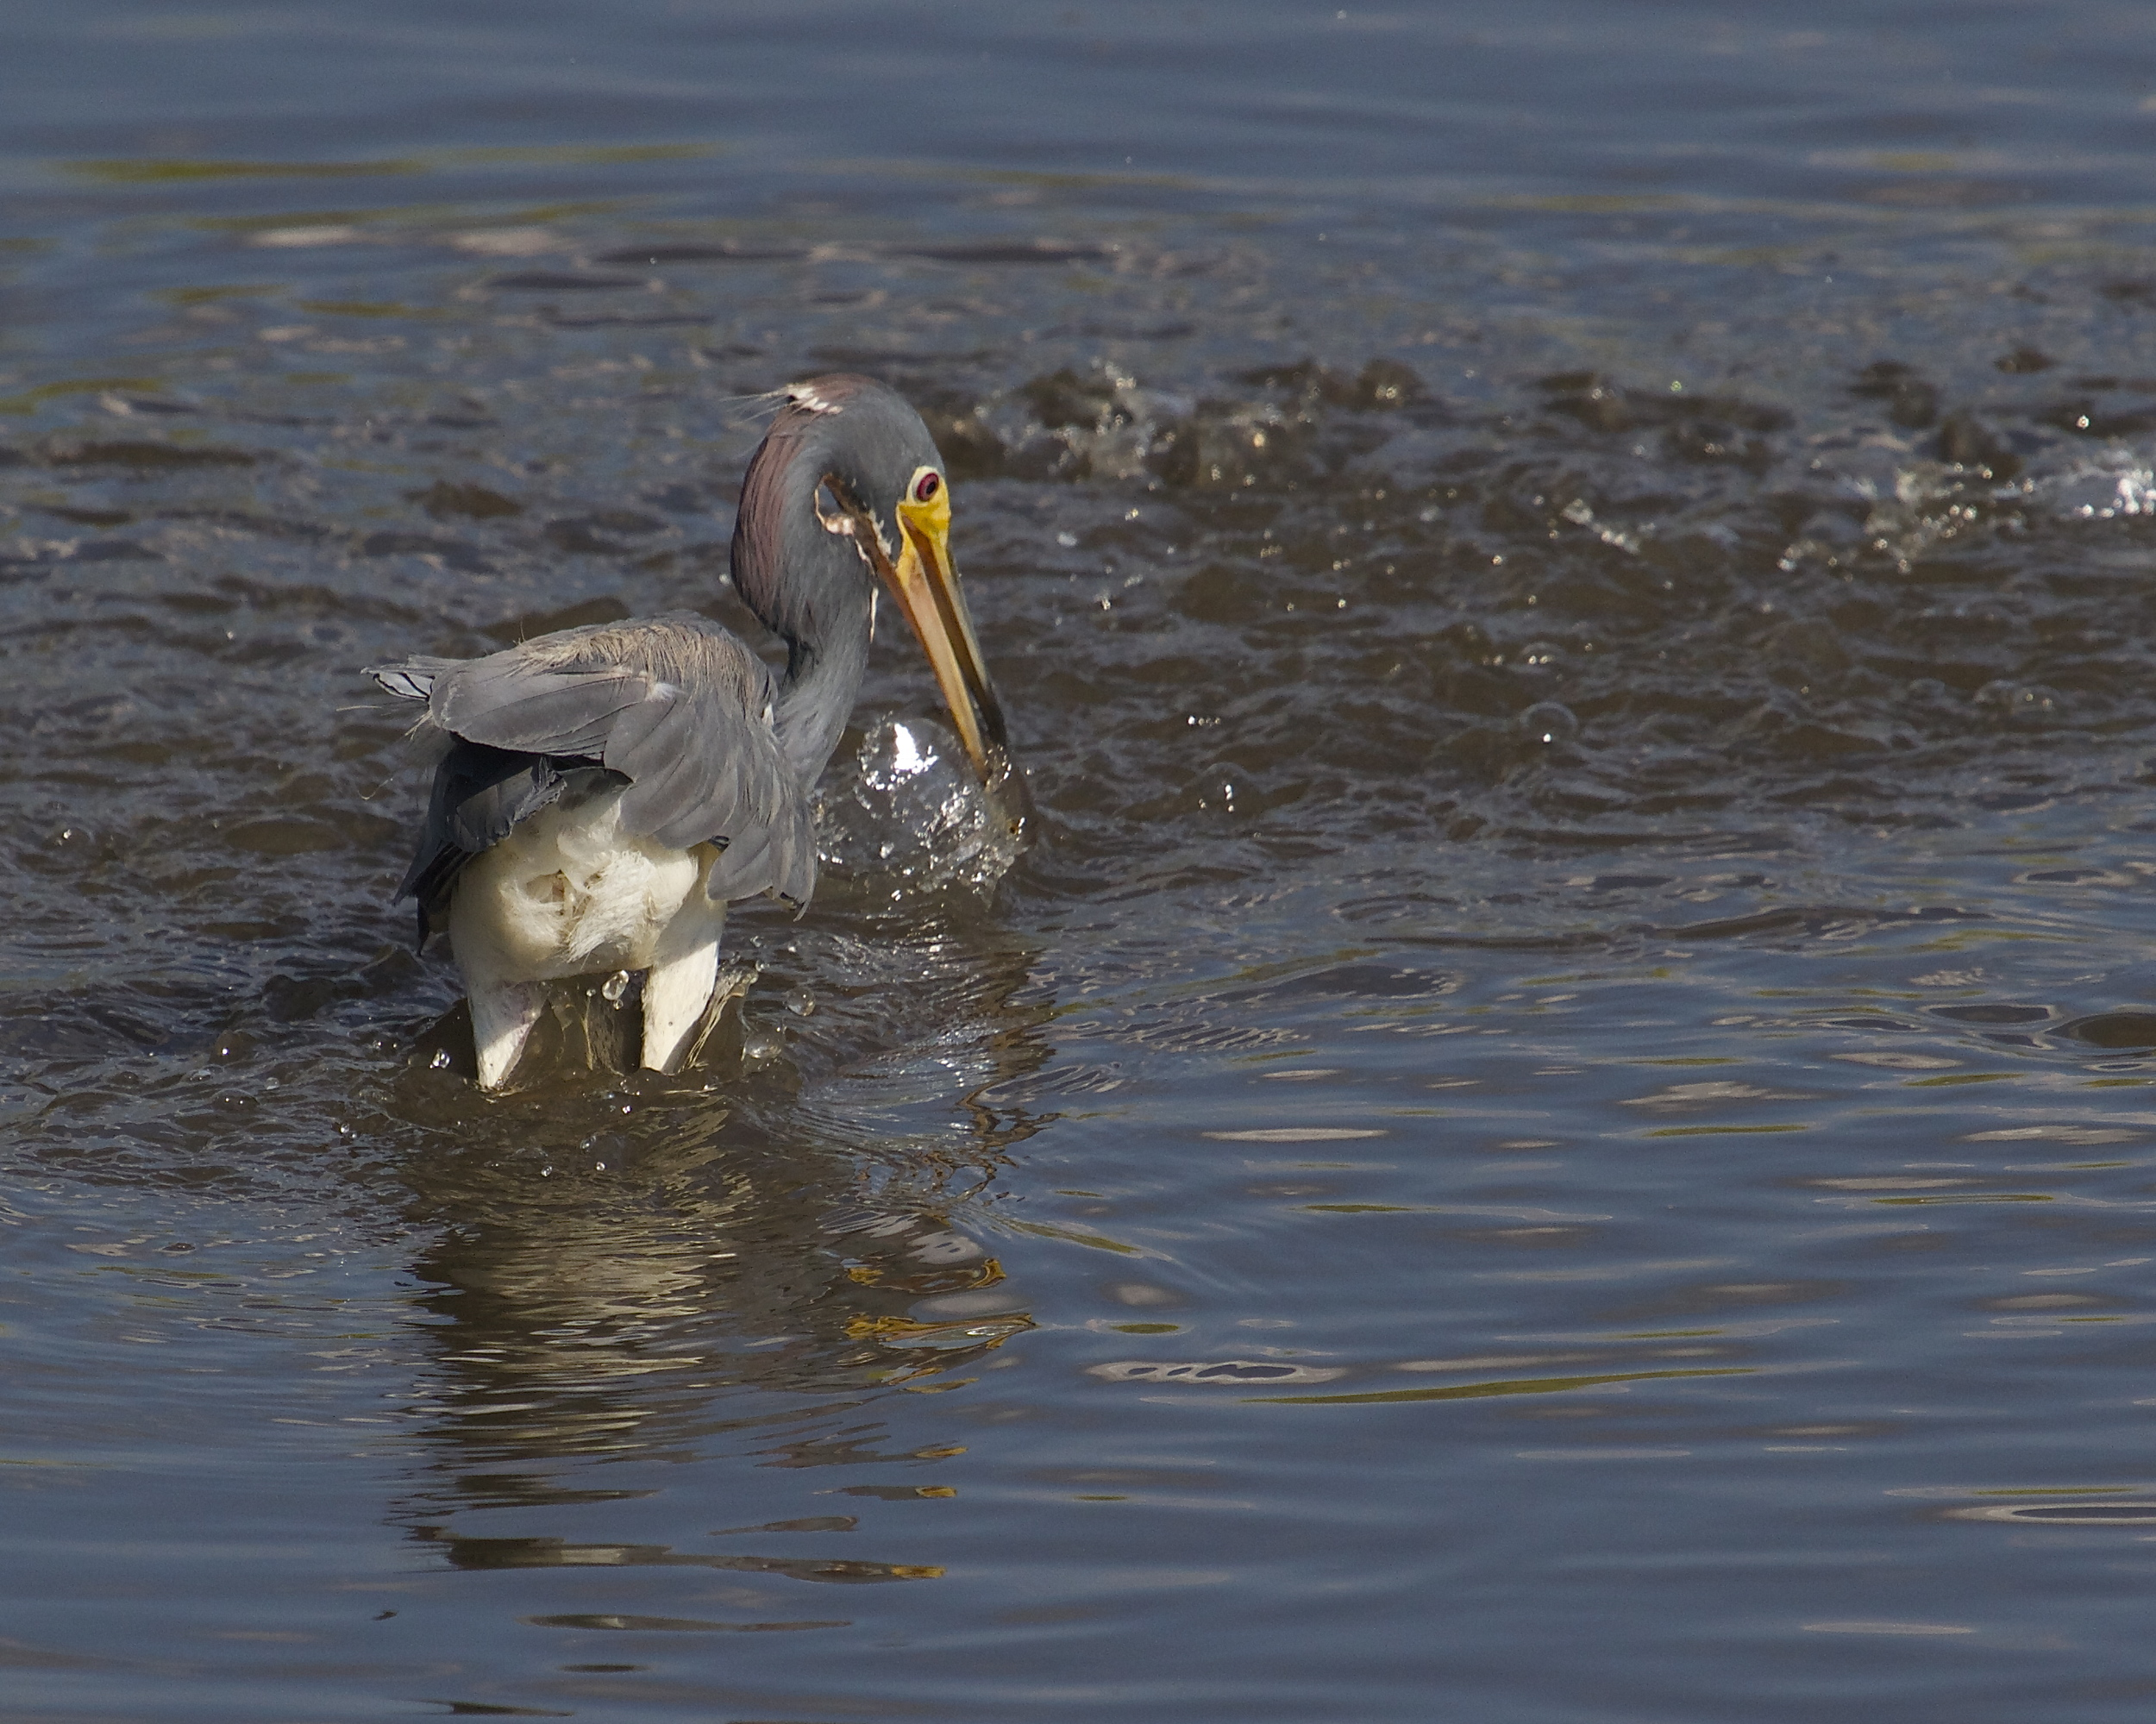 A swirling school of minnows surround the Heron, the hunter strikes.